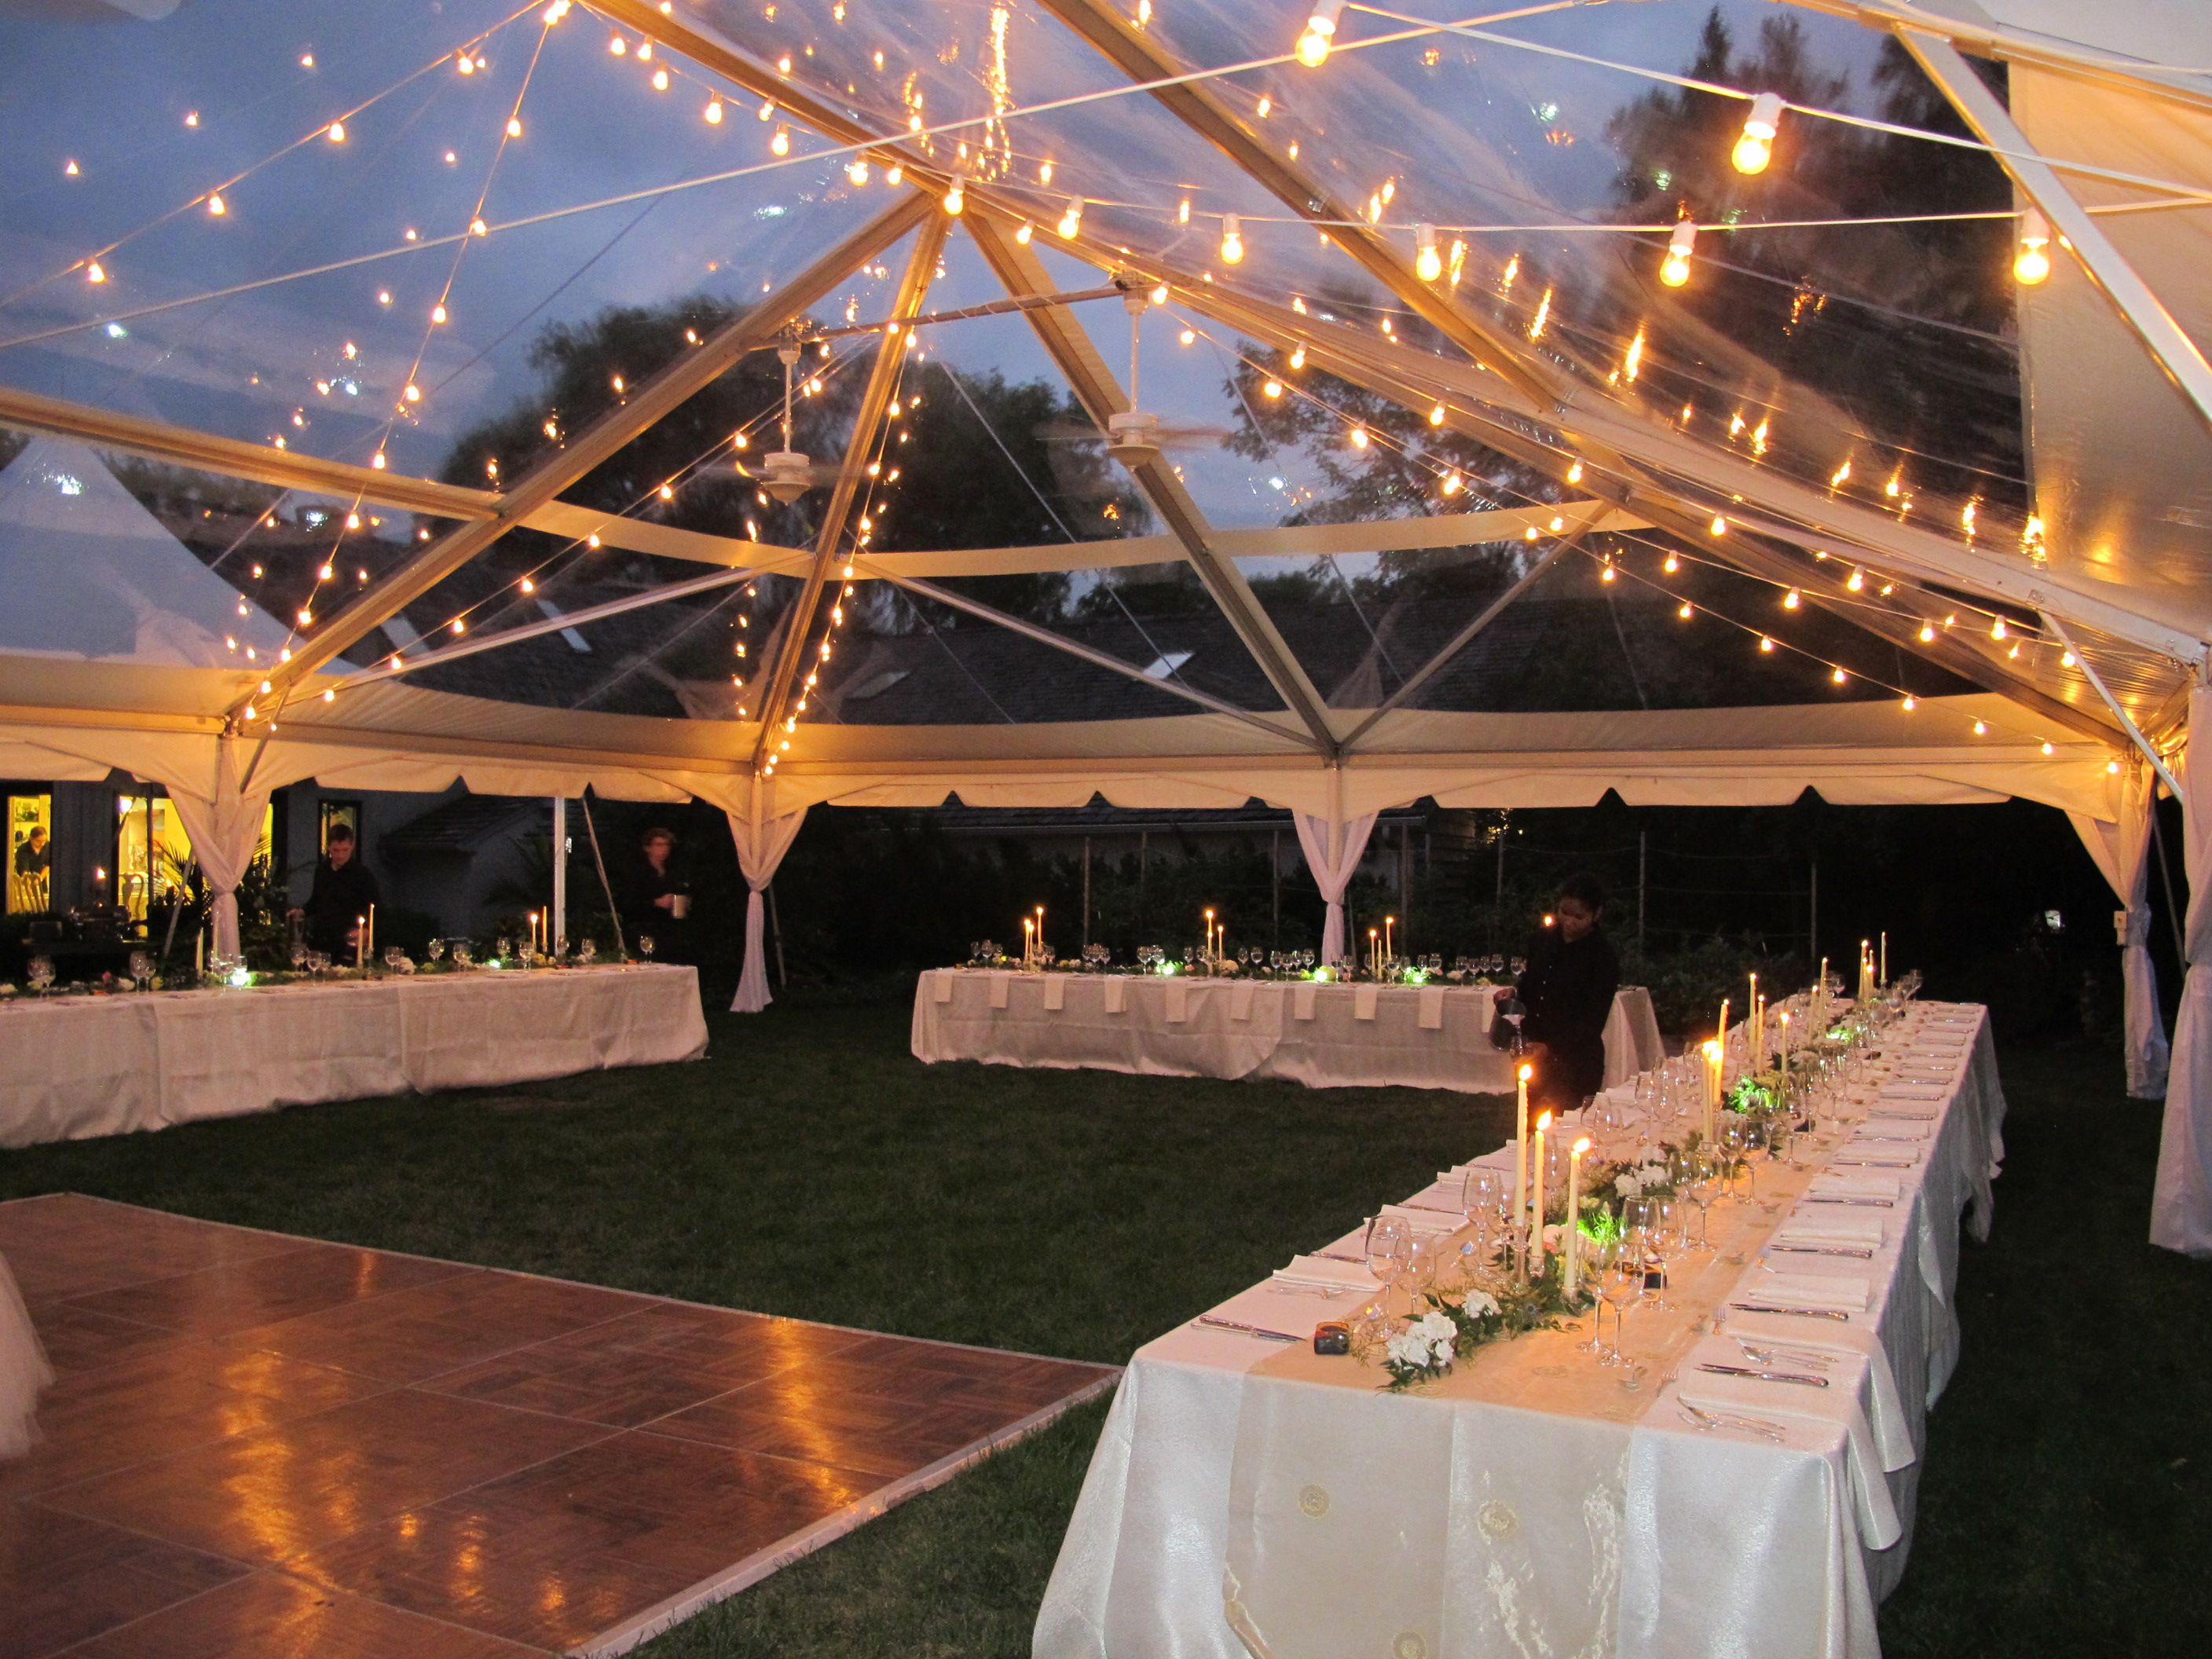 Italian bistro cafe string light rental for wedding reception in - We Put Up This Clear Top Tent With Clear Walls For A Memorial Event Description Tent Lightingwedding Lightingcafe